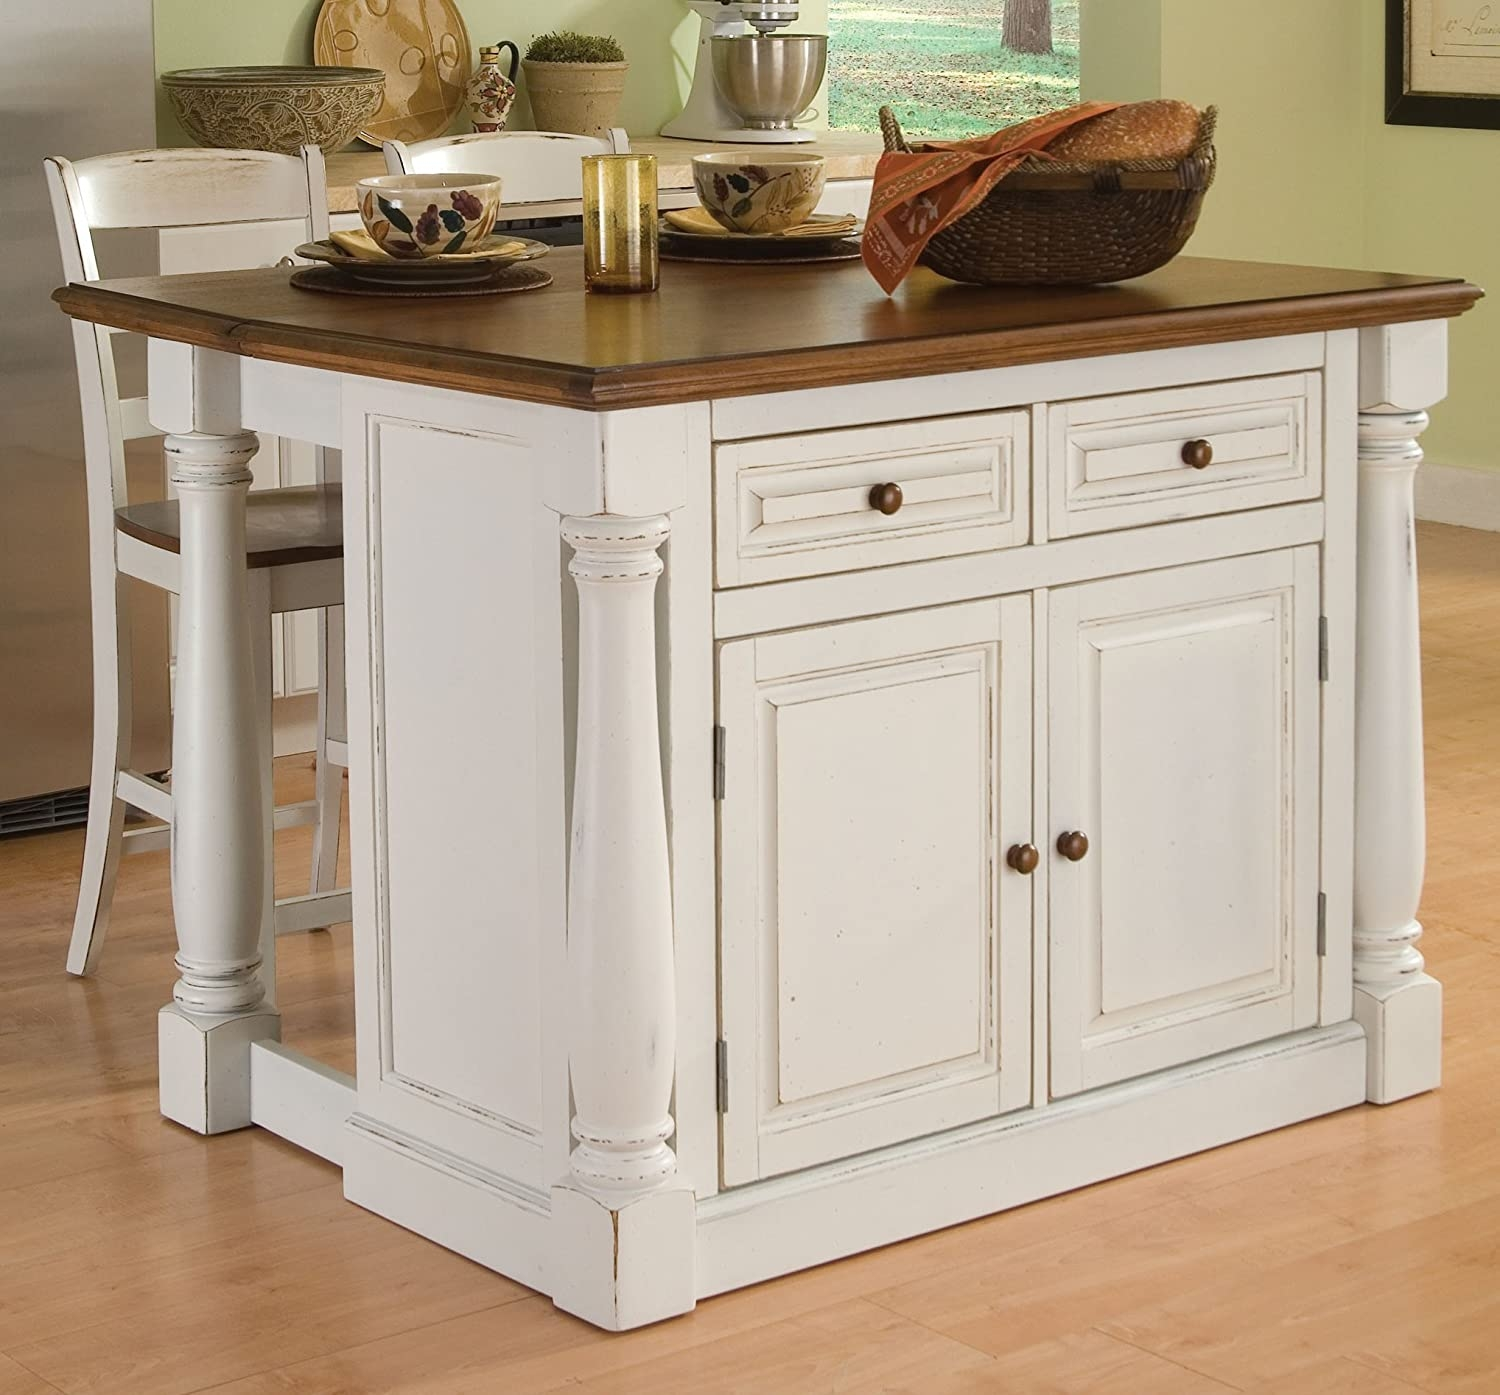 portable kitchen islands with breakfast bar ideas on foter rh foter com Breakfast Bar with Storage Large Kitchen Islands with Breakfast Bar